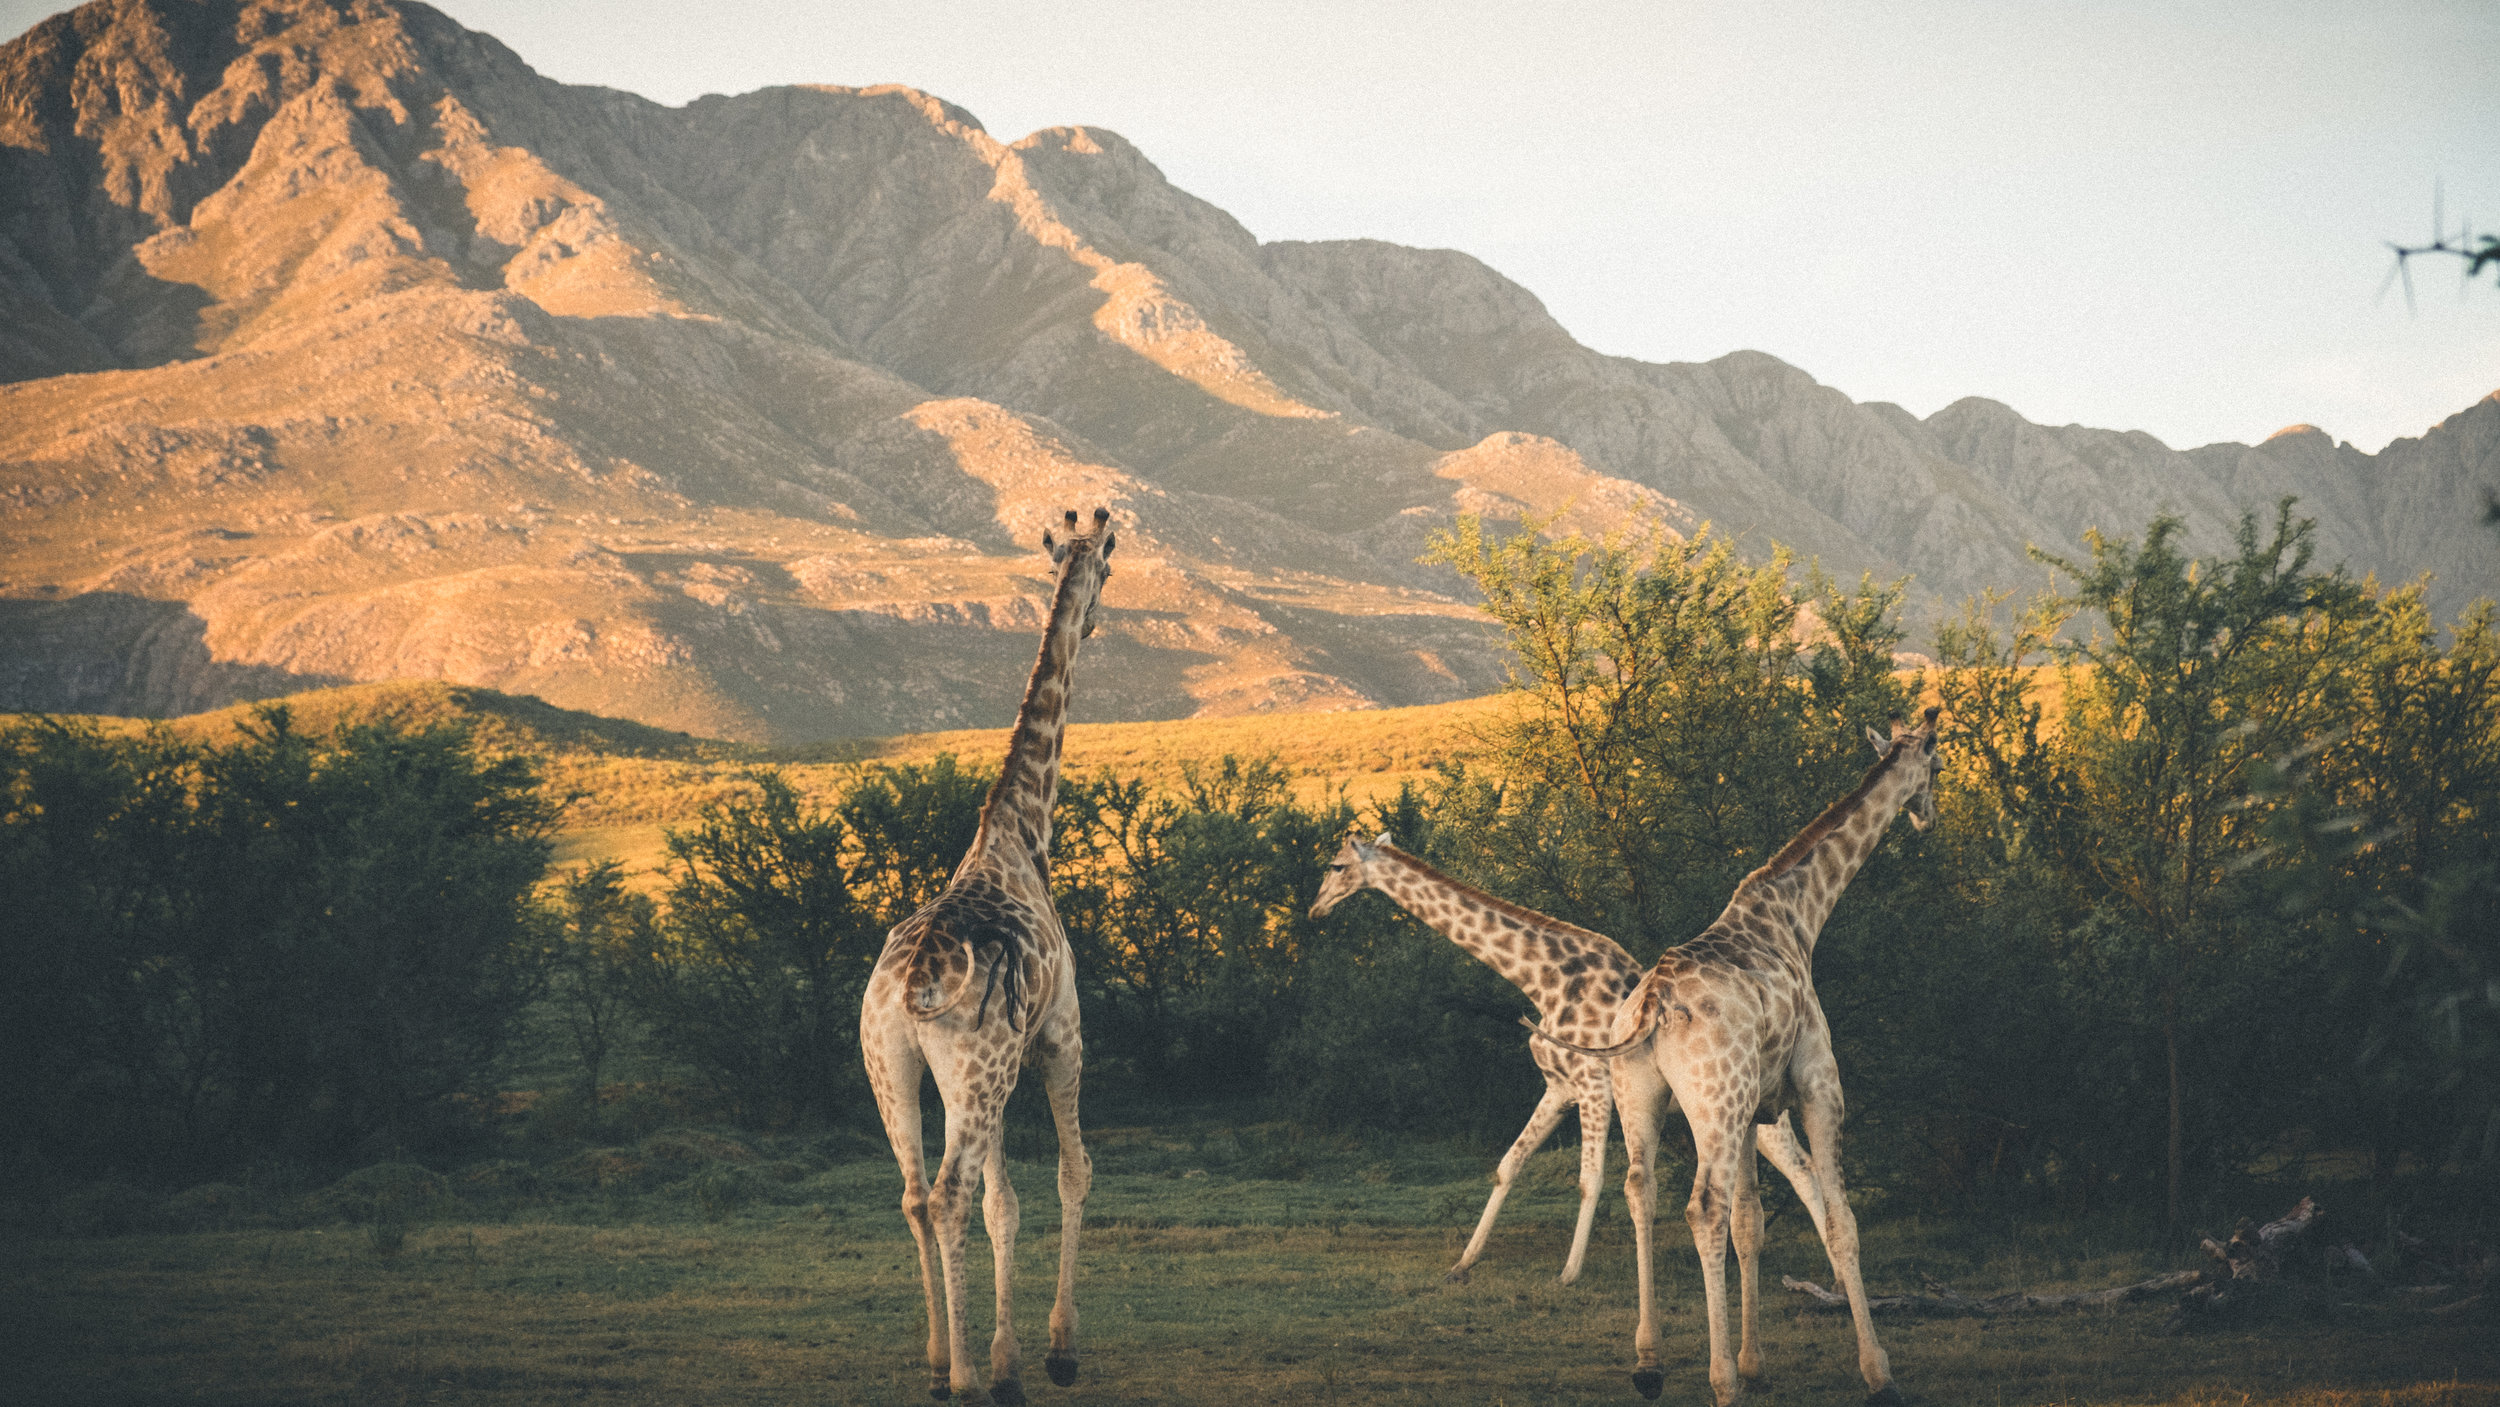 WESTERN CAPE, SOUTH AFRICA